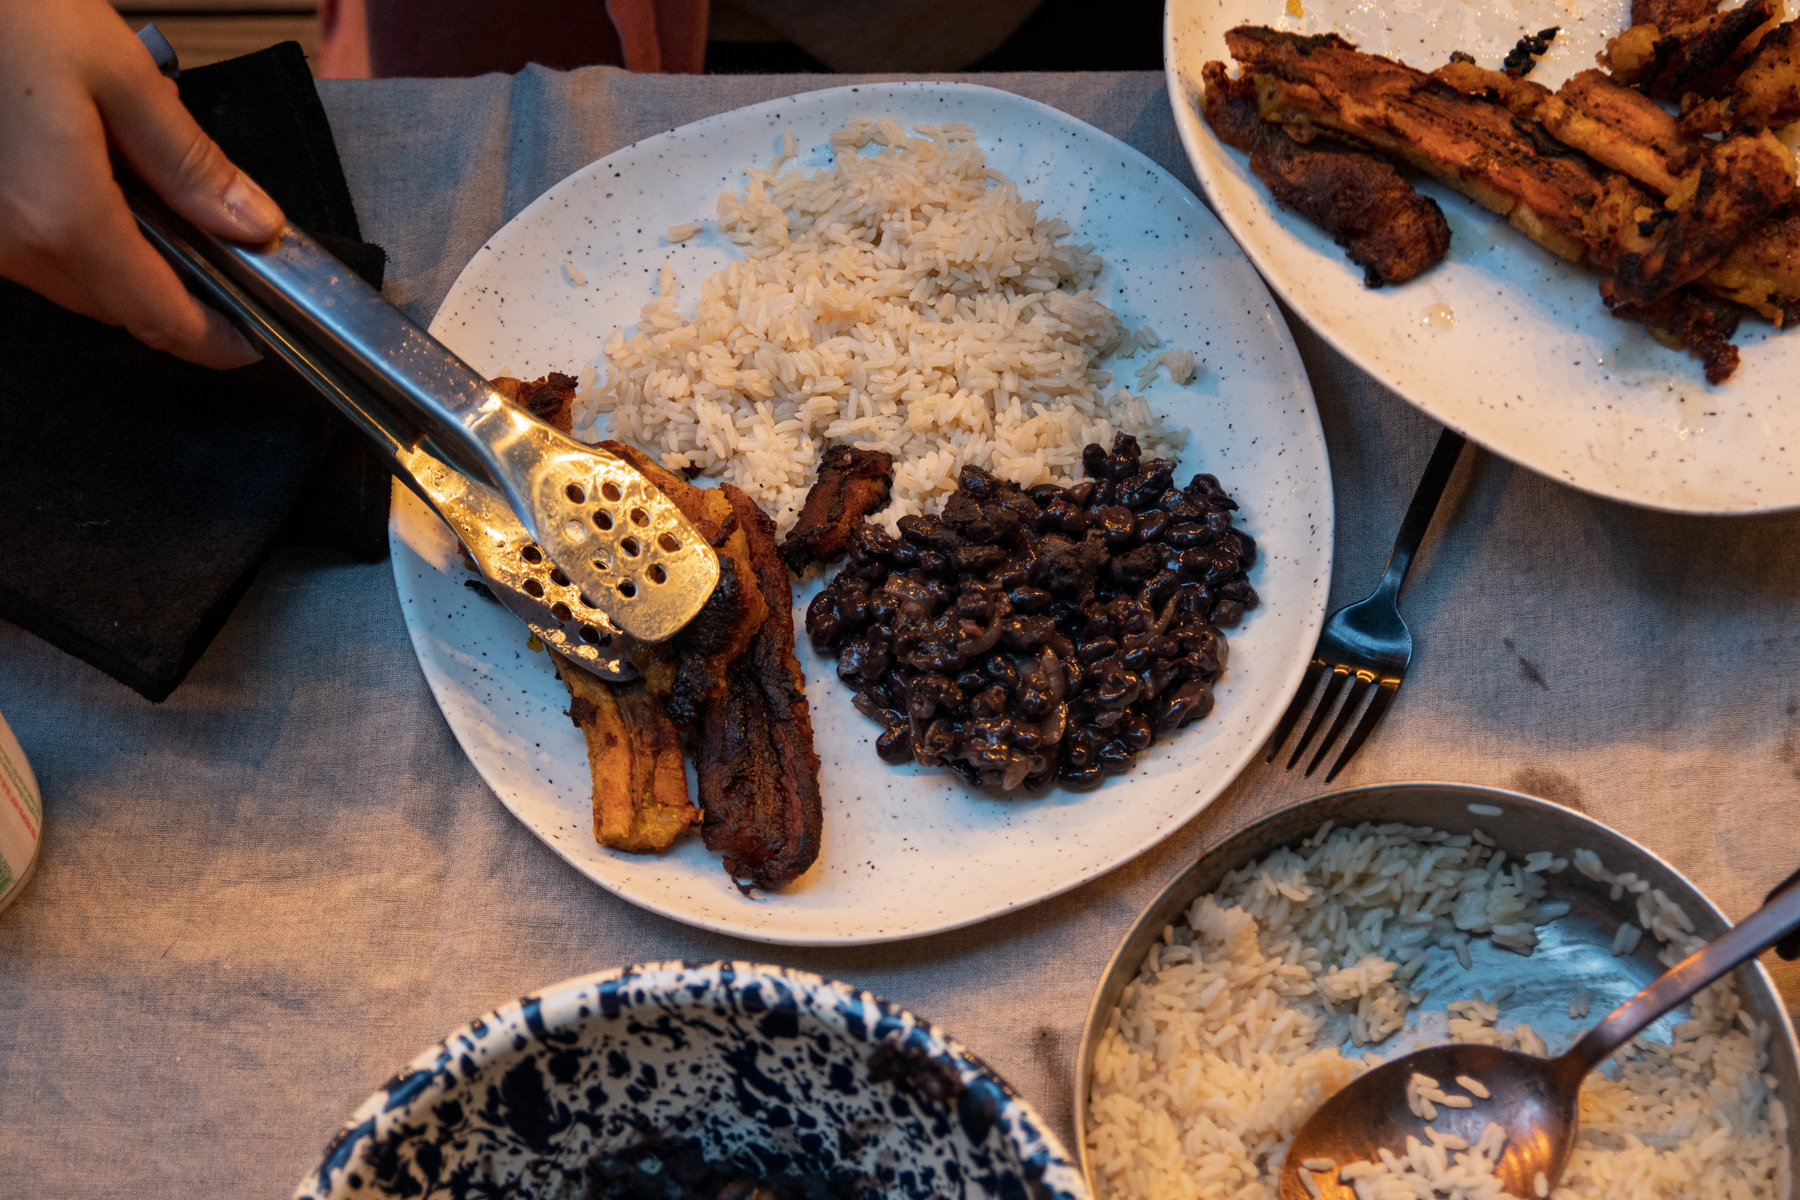 Camping for Foodies: Black Beans & Rice with Fried Plantains